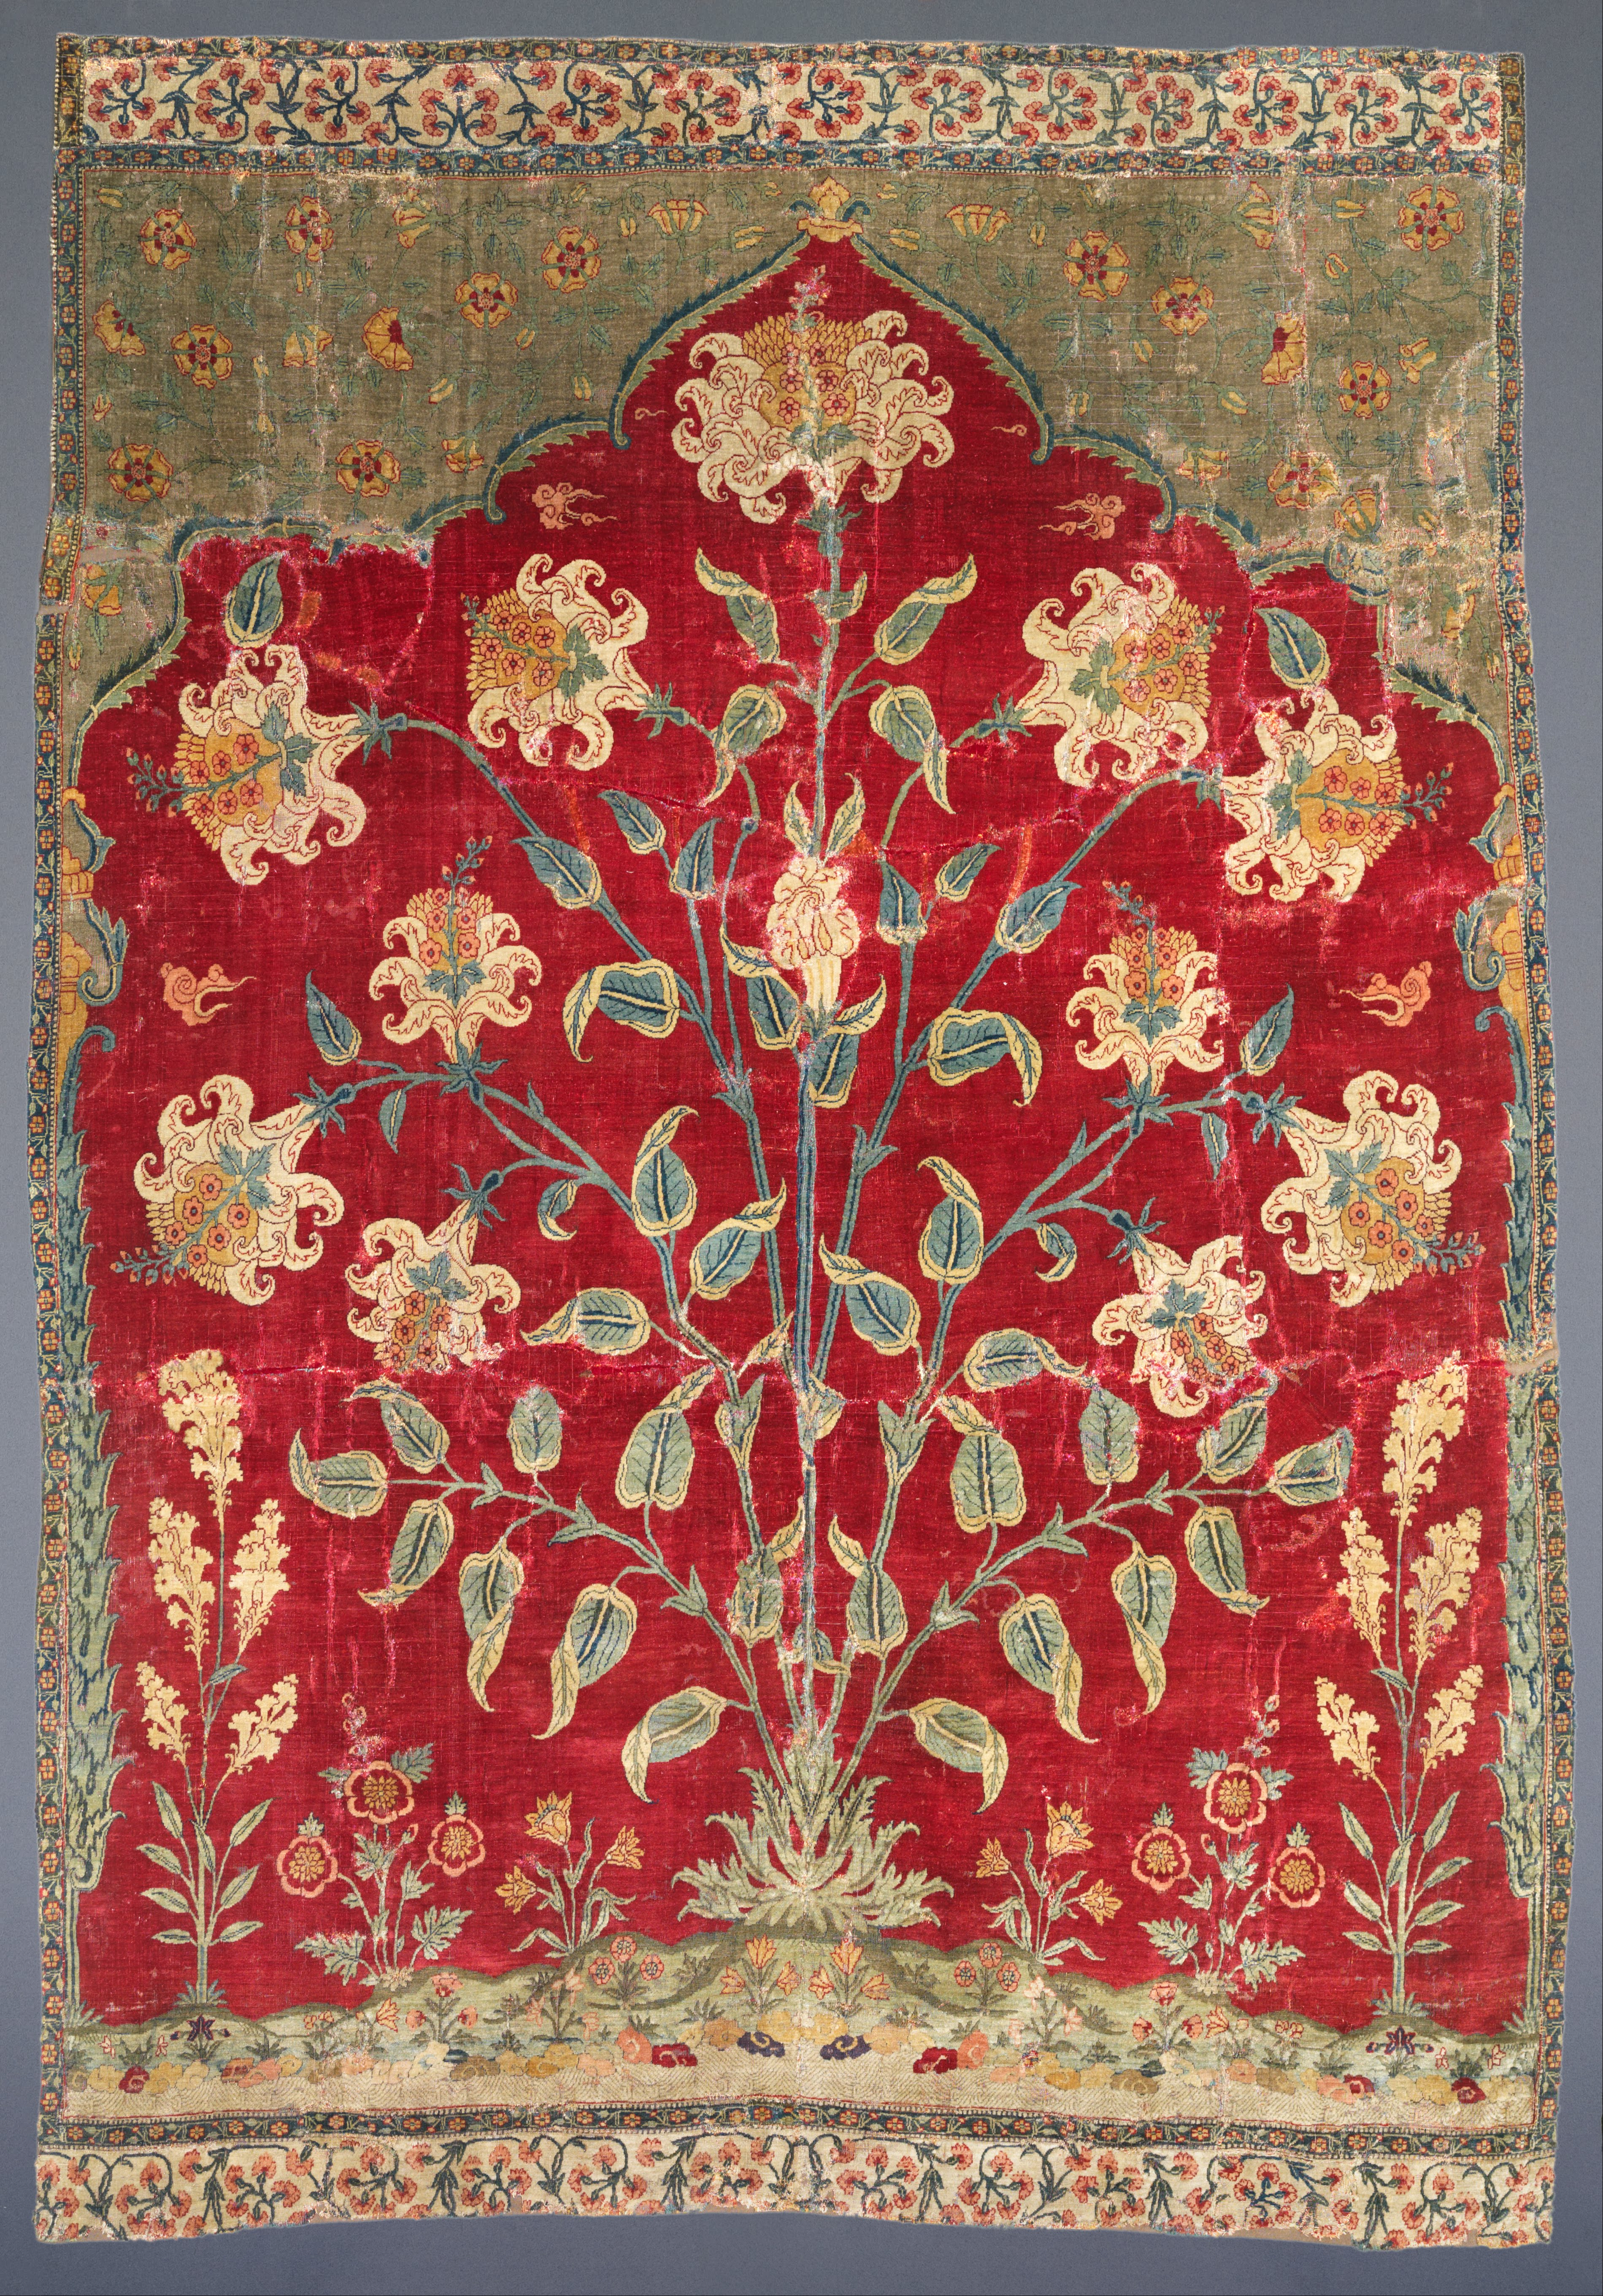 FileUnknown India Fragment Of A Saf Carpet Google